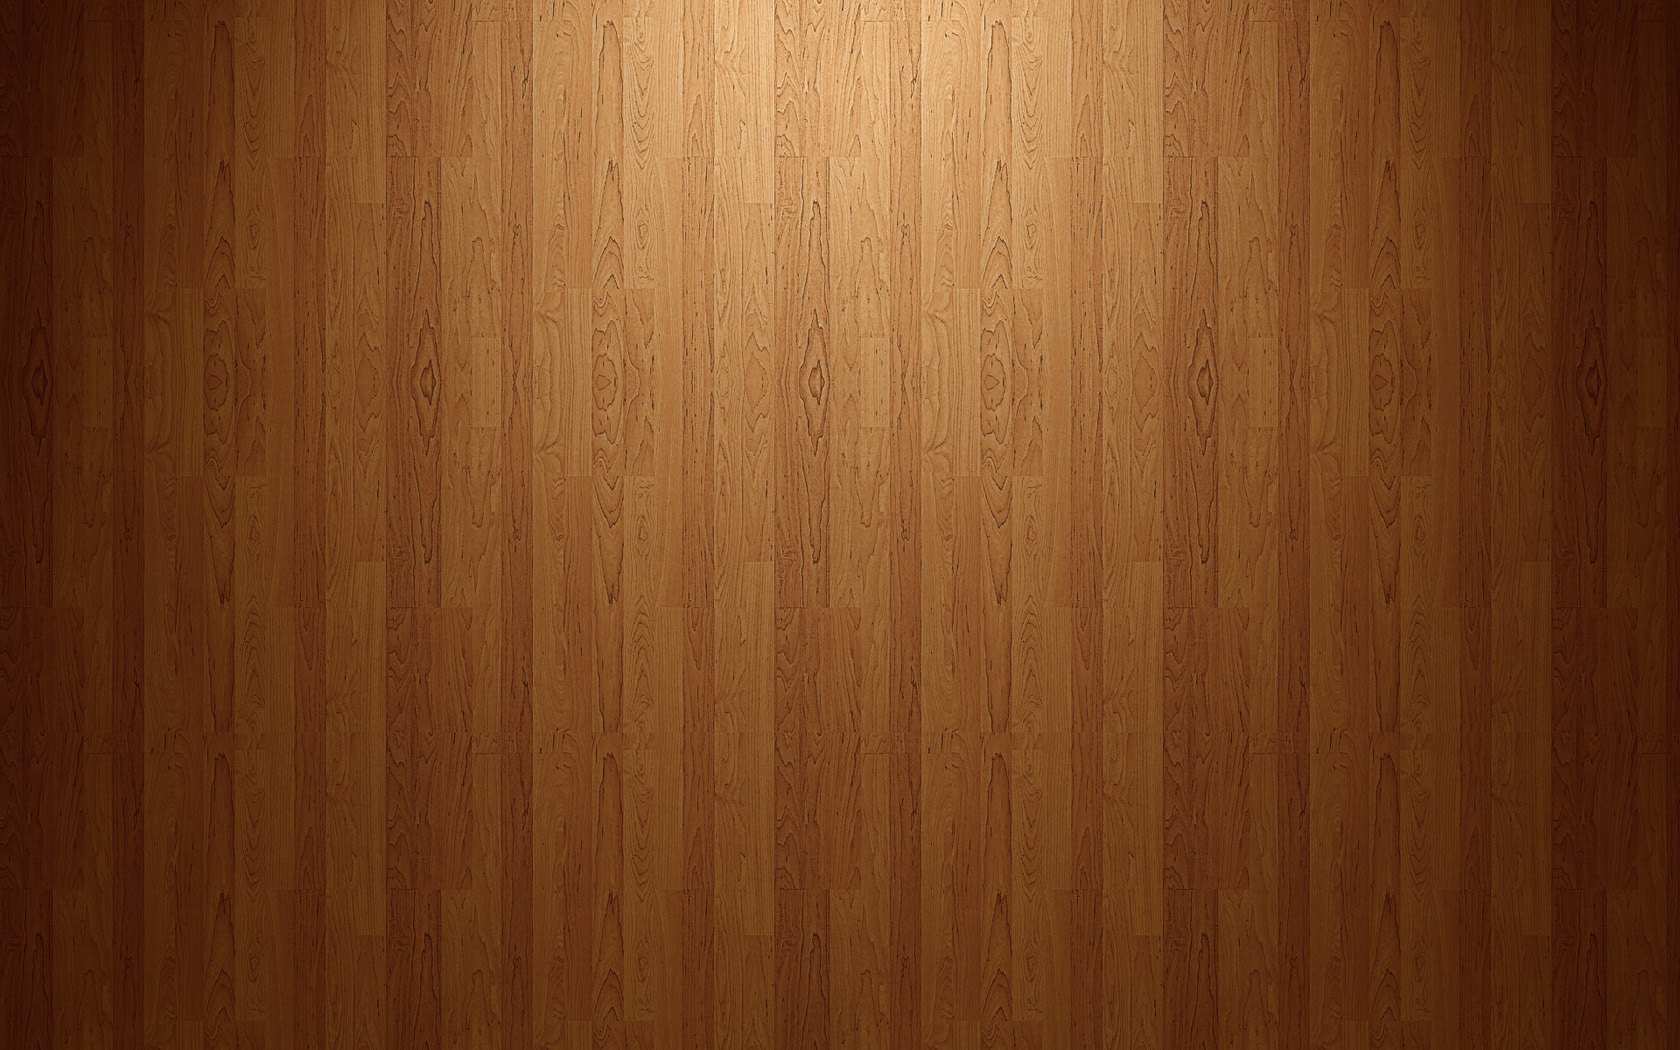 Wood Textures PPT Backgrounds